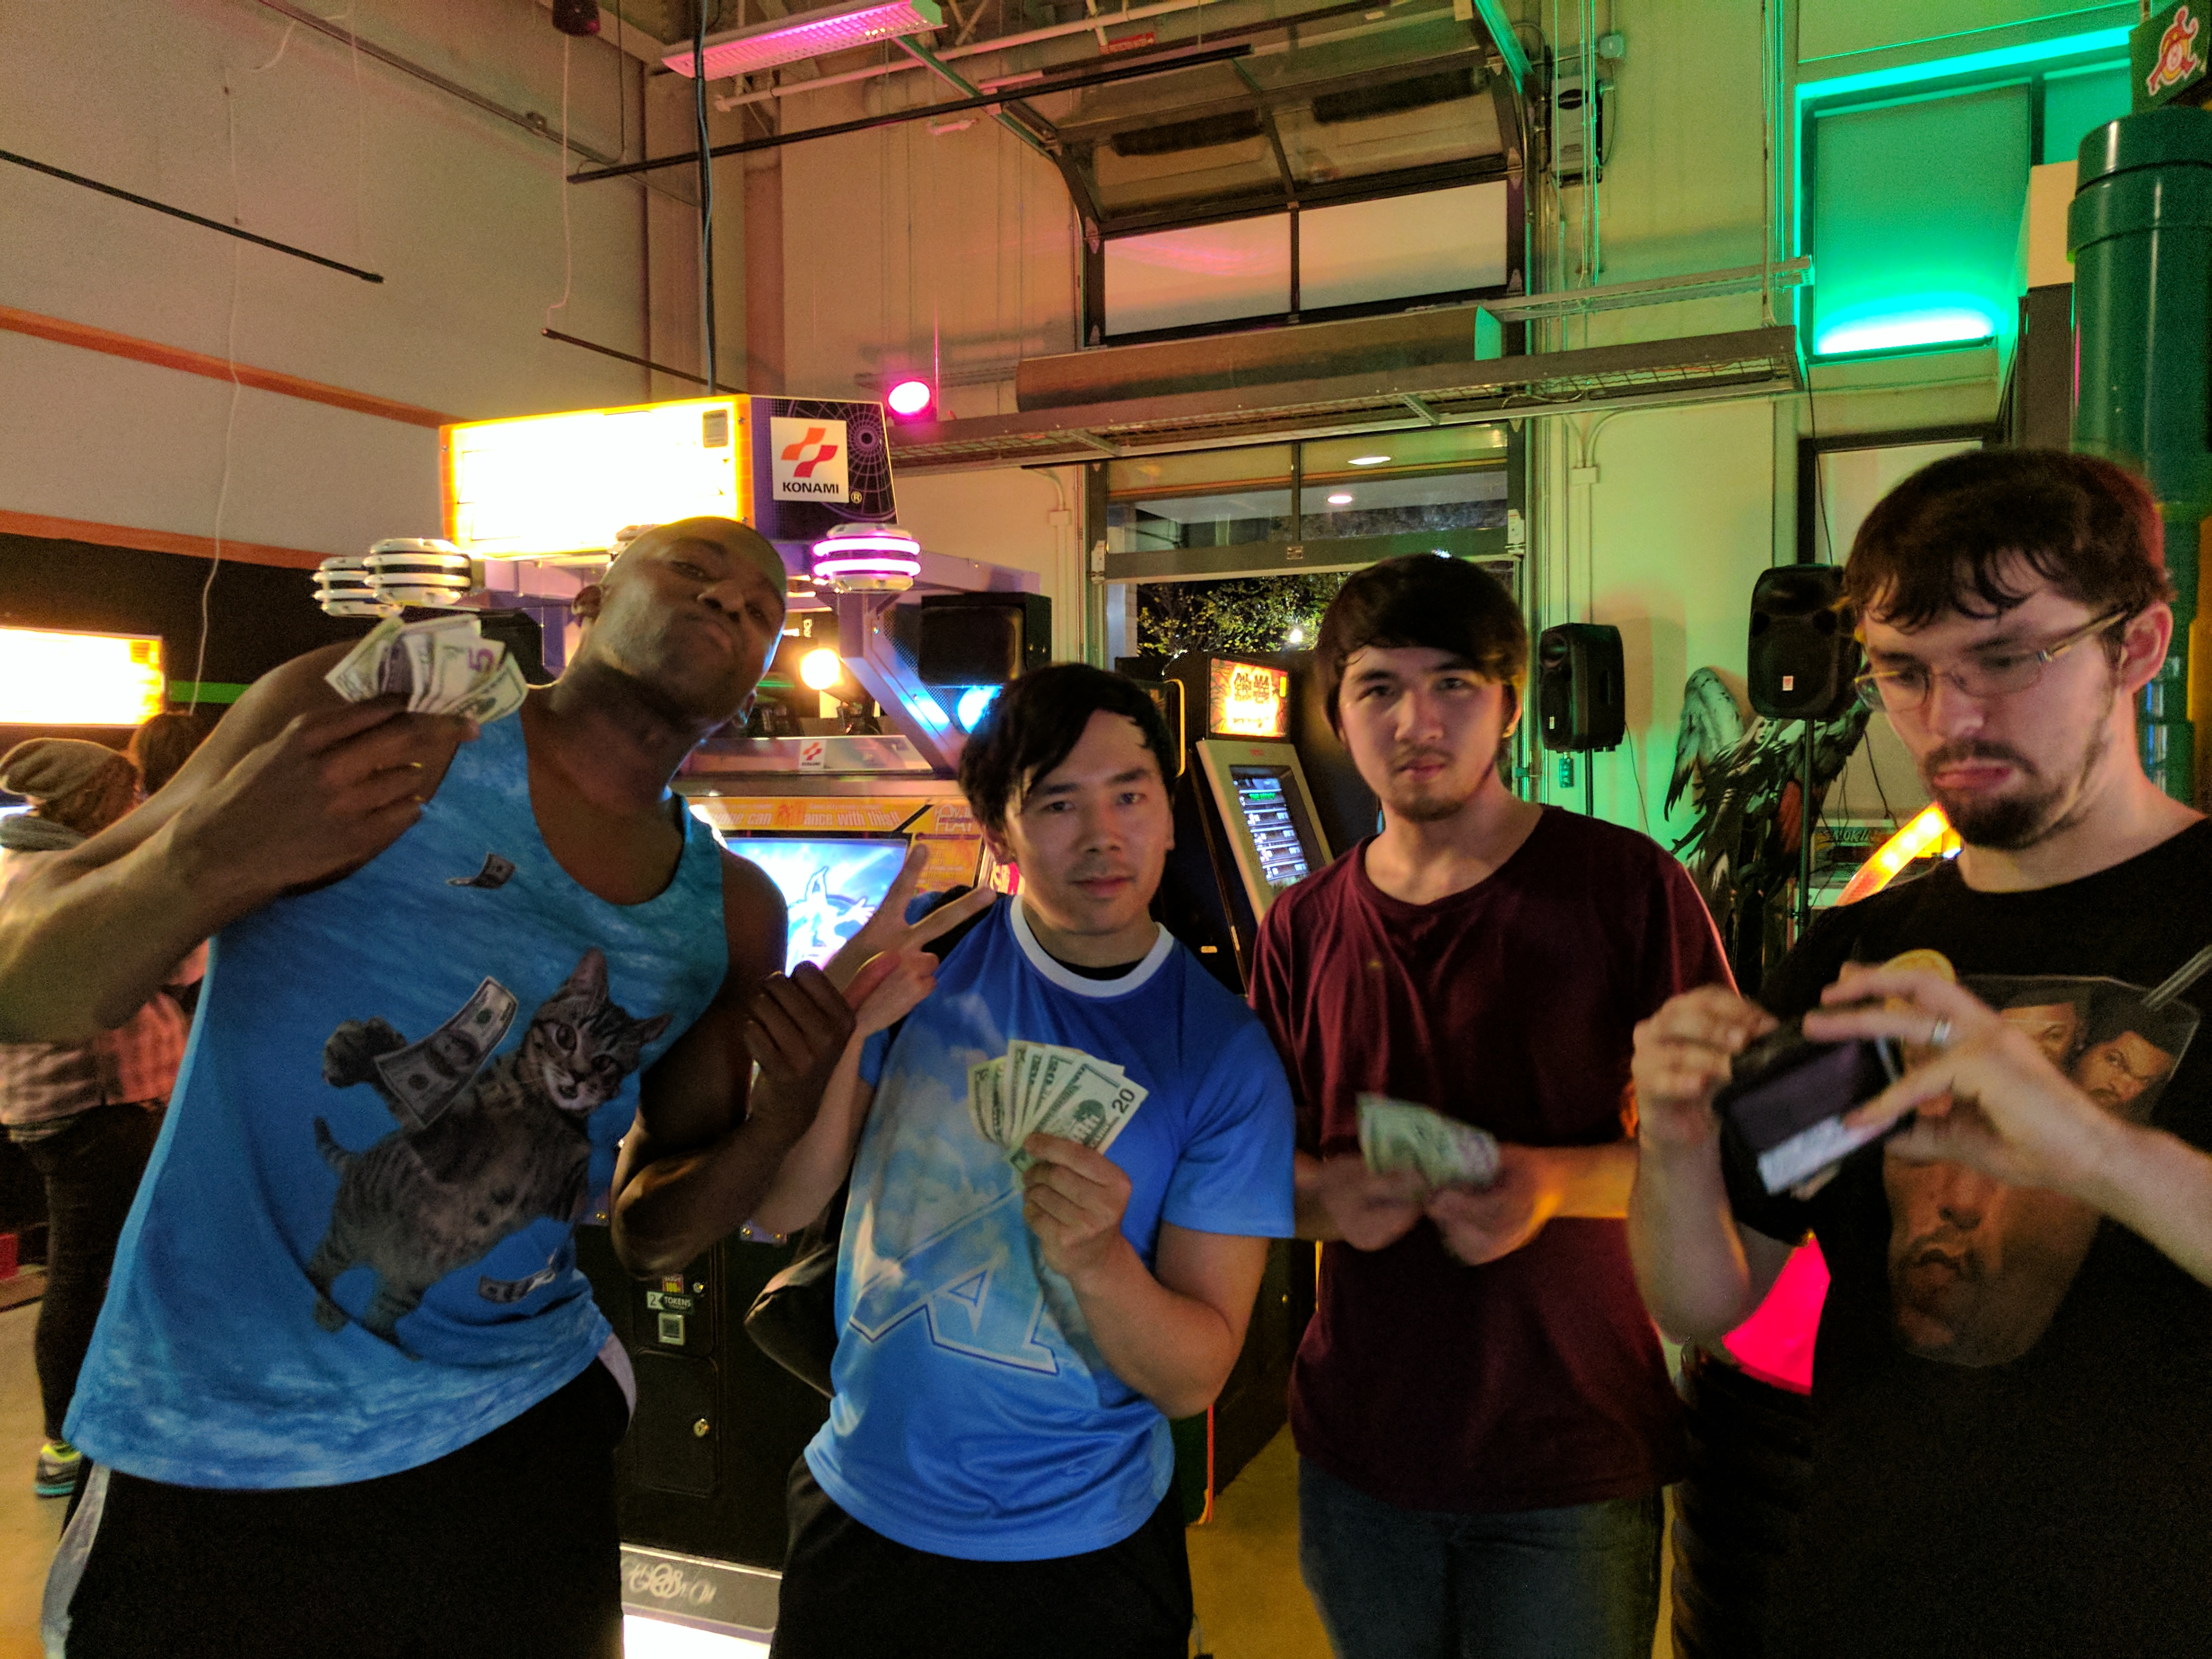 DDR(2014) Top 4 winners left to right: Nick Payne (3rd), David Lee (1st), Loc (2nd), Nick St. Pierre (4th)